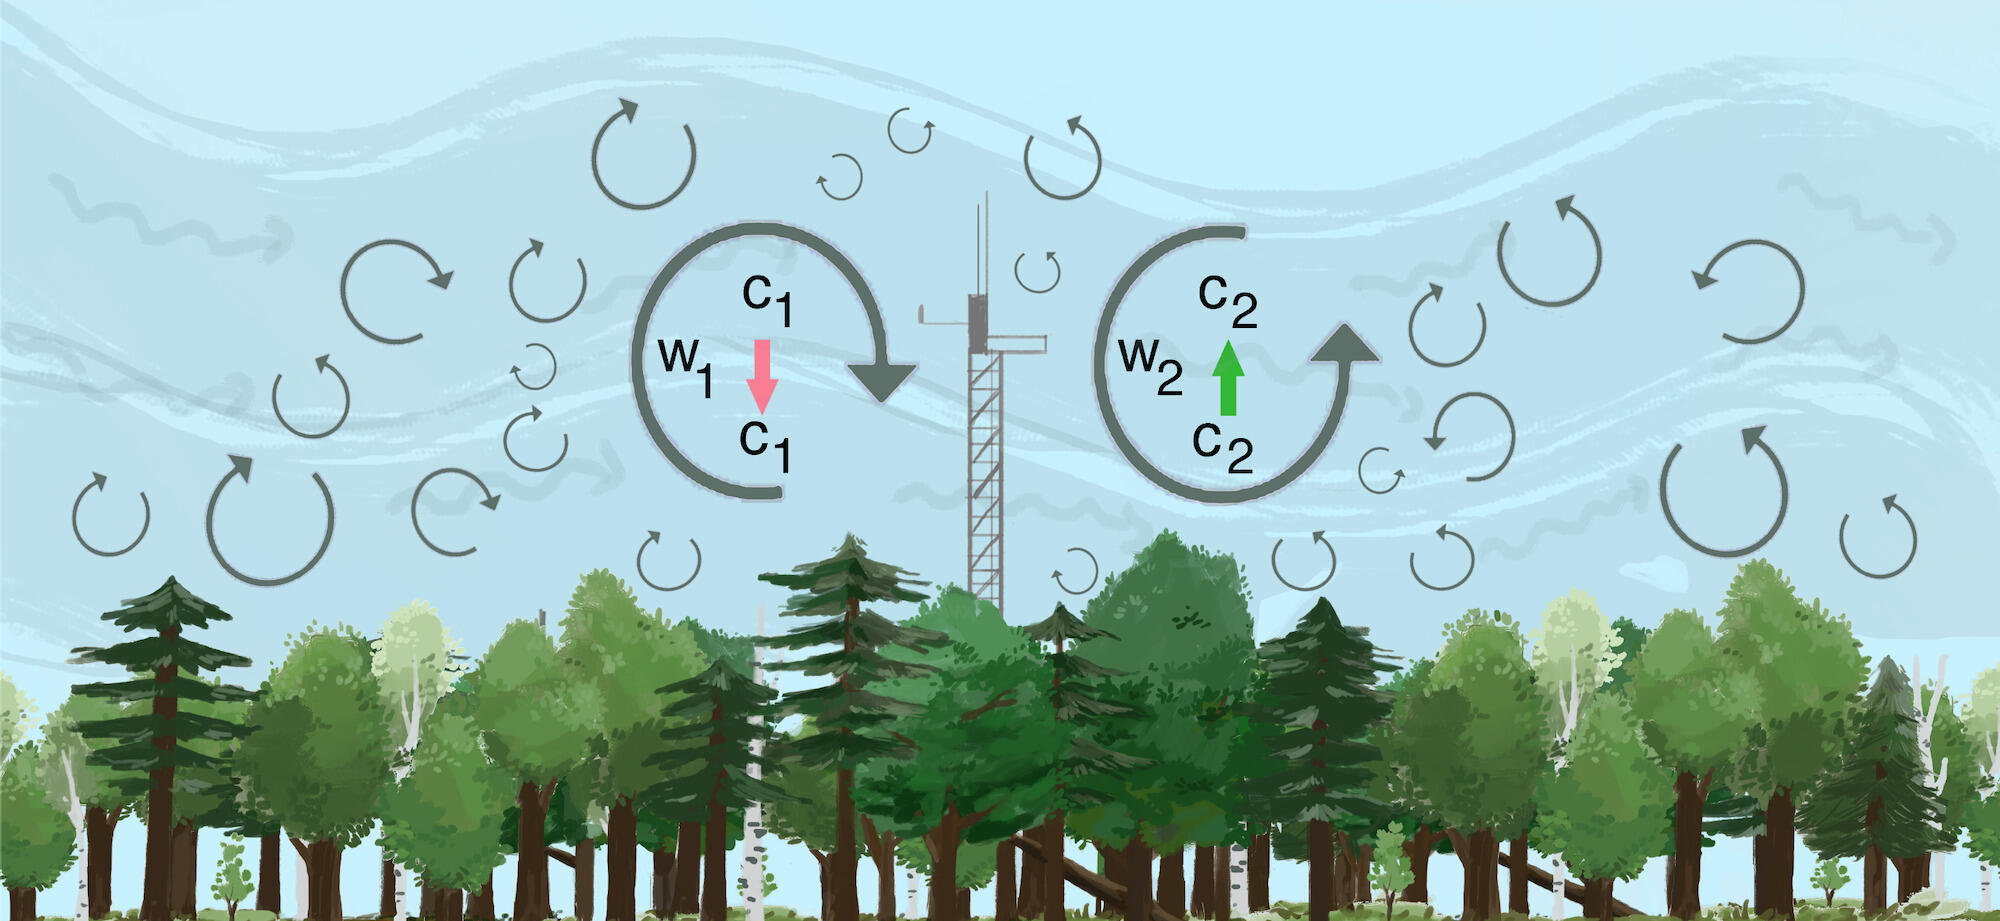 Illustration demonstrating the phenomenon known as eddy covariance, projecting carbon emissions as they interact with wind patterns and a forested habitat.